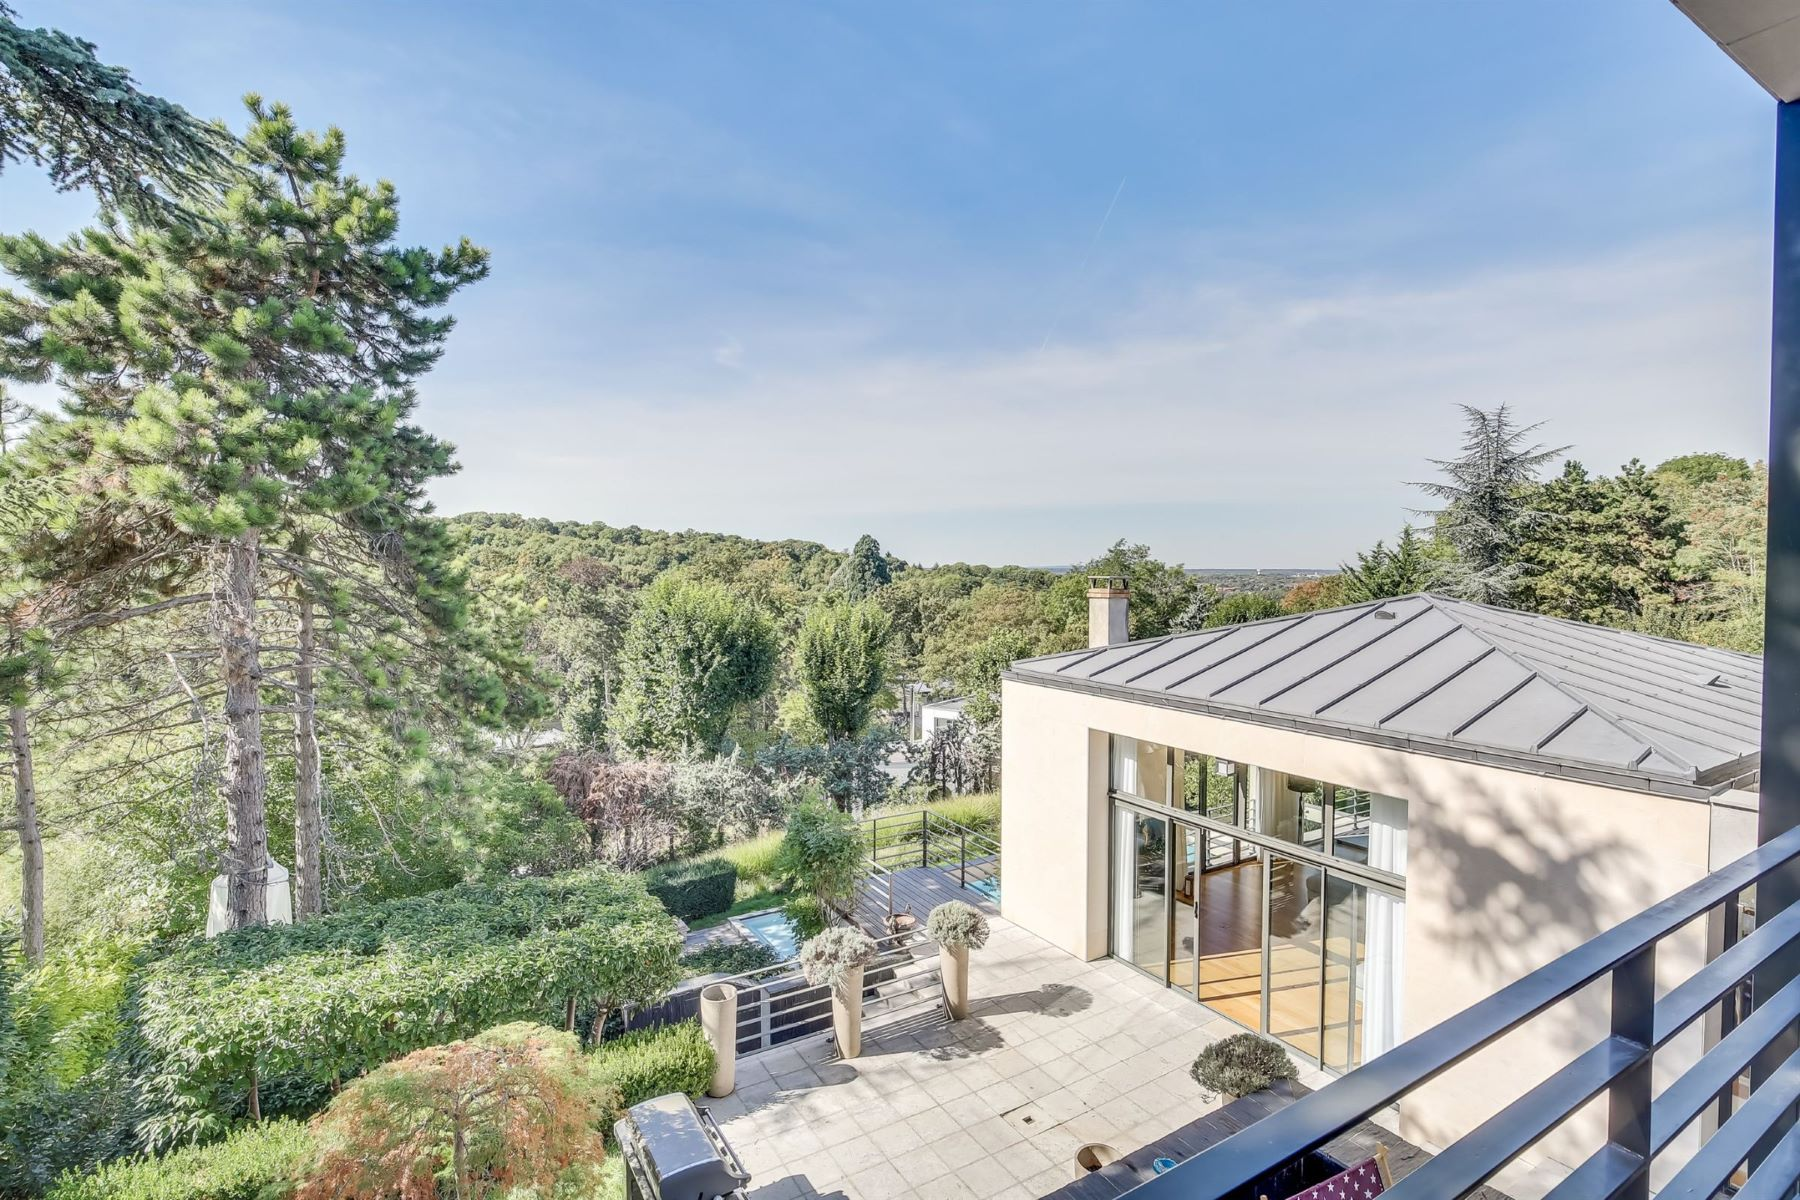 Single Family Homes for Active at Property with exceptional view for sale Rueil-Malmaison city centre Rueil Malmaison, Ile-De-France 92500 France